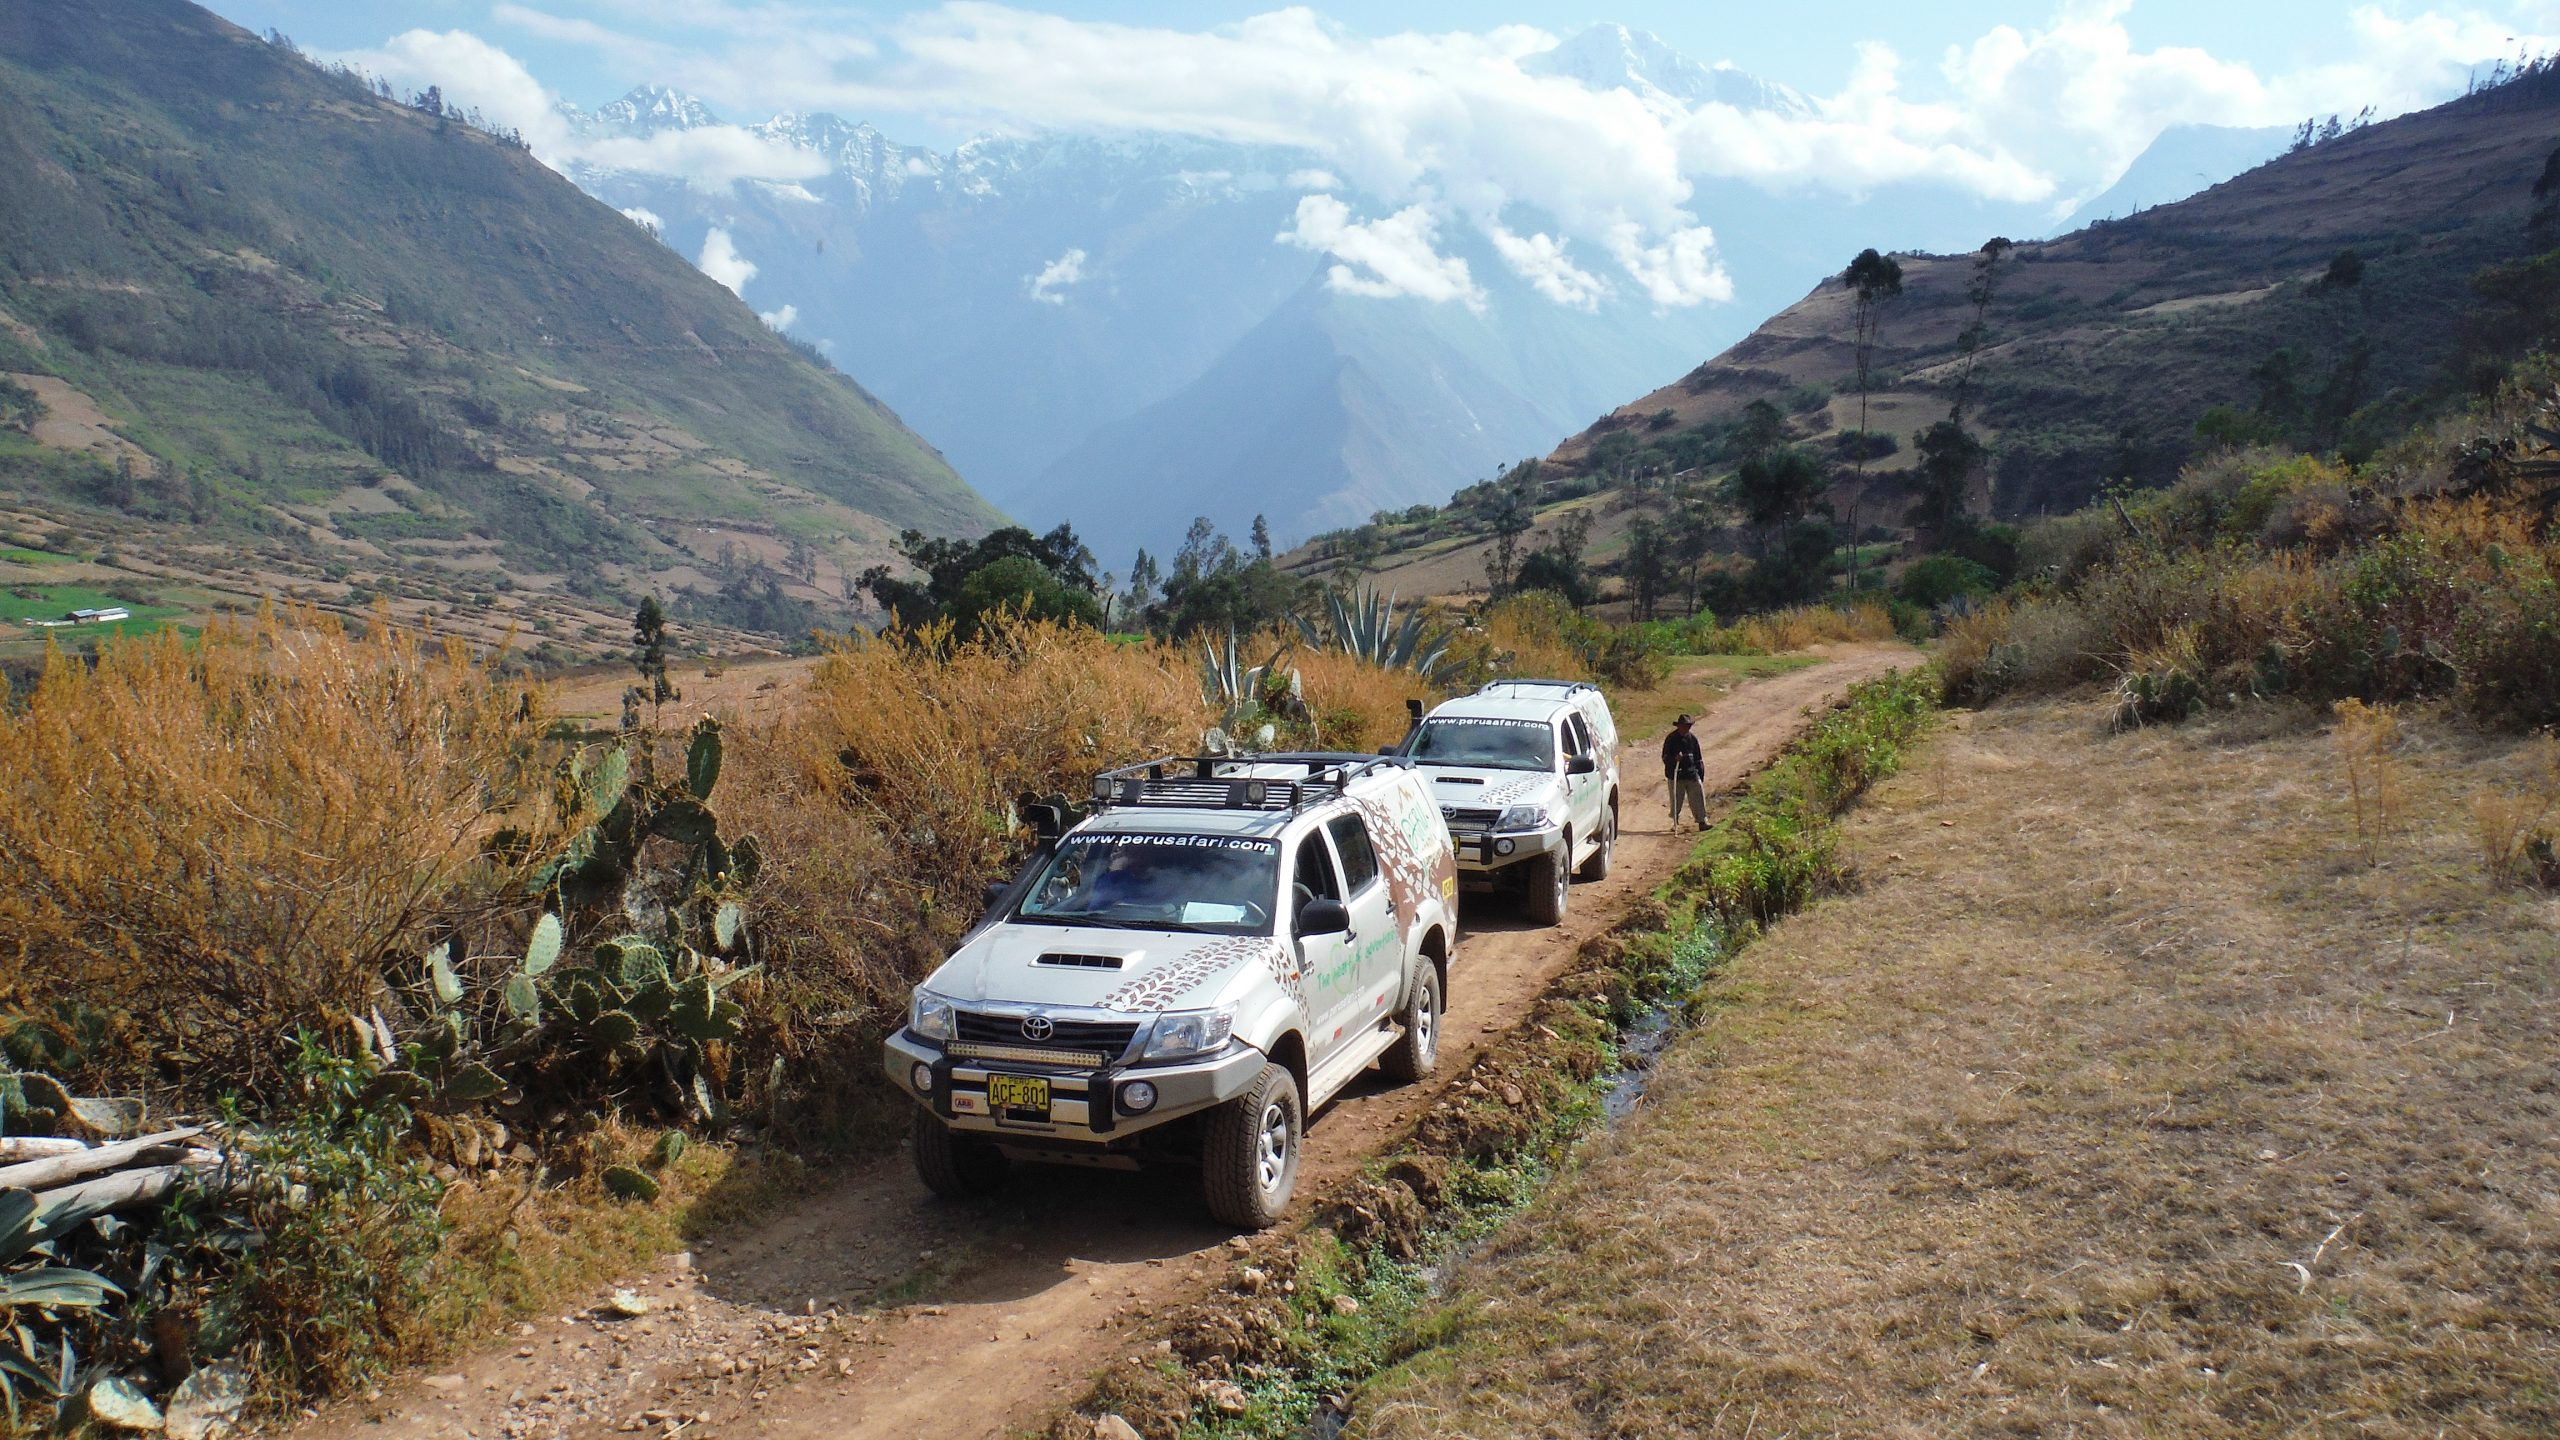 Self drive in the Andes